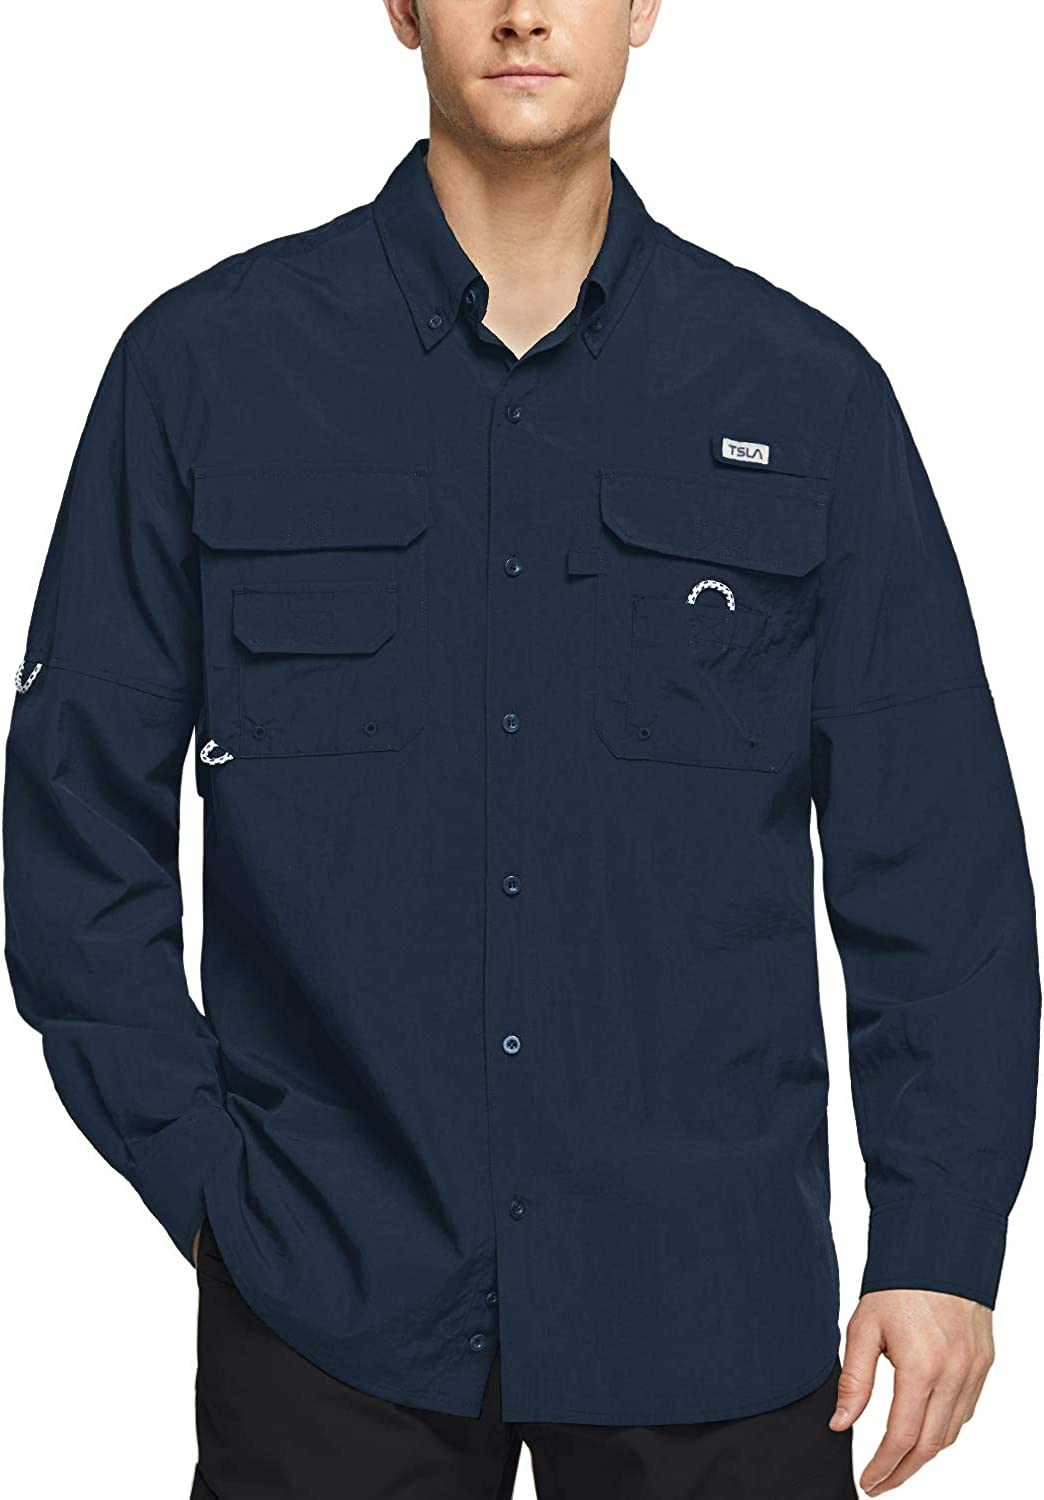 TSLA Men's Performance Fishing Shirt UPF Button Breathable 50+ Max 50% Opening large release sale OFF